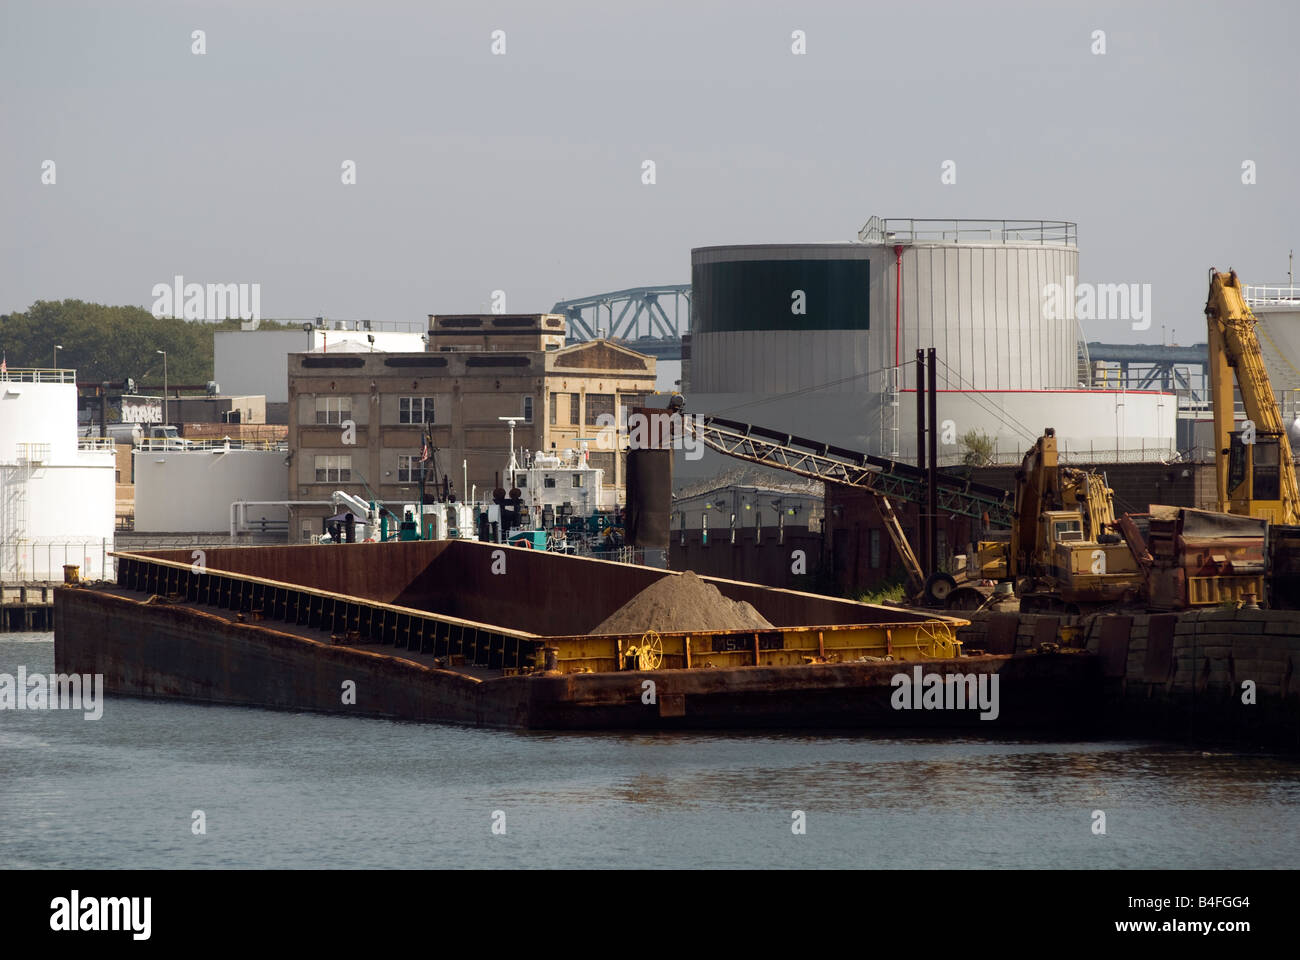 A barge moored along Newtown Creek an industrial waterway separating the boroughs of Brooklyn and Queens in New - Stock Image